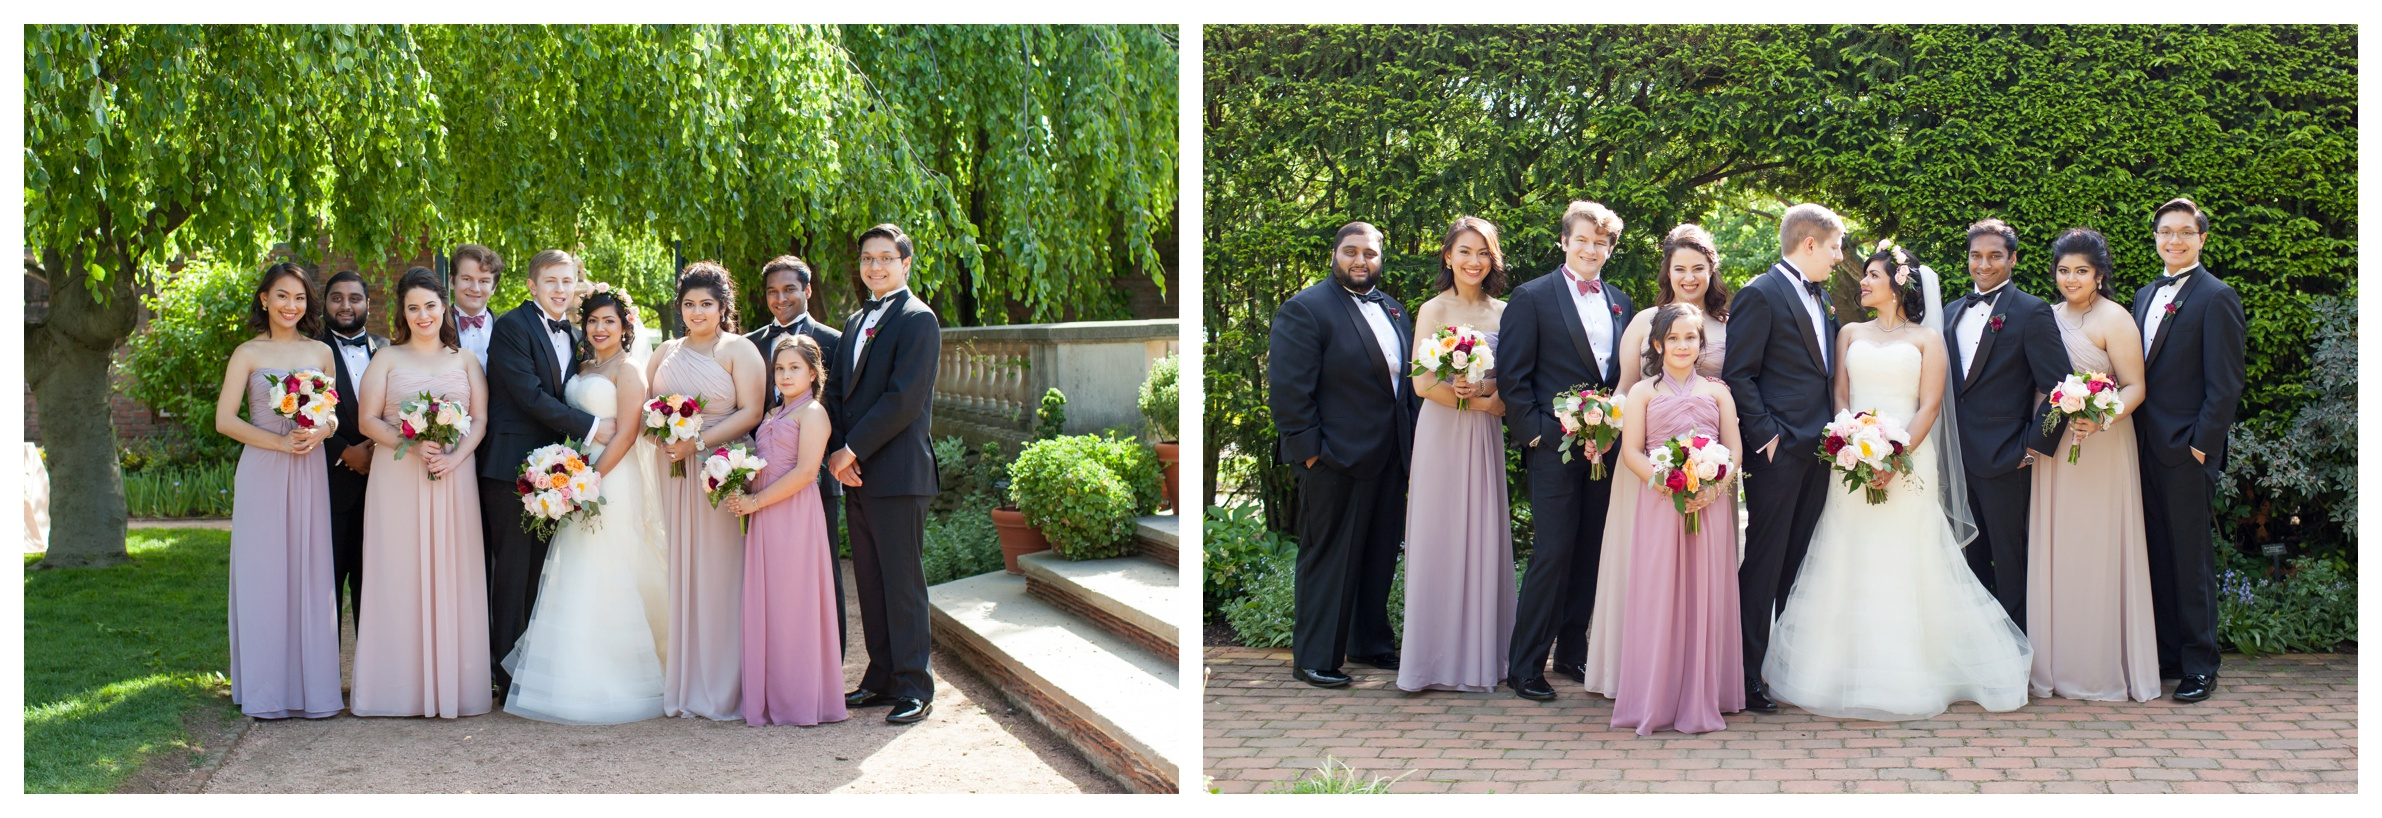 bridal-party-chicago-botanic-garden-wedding